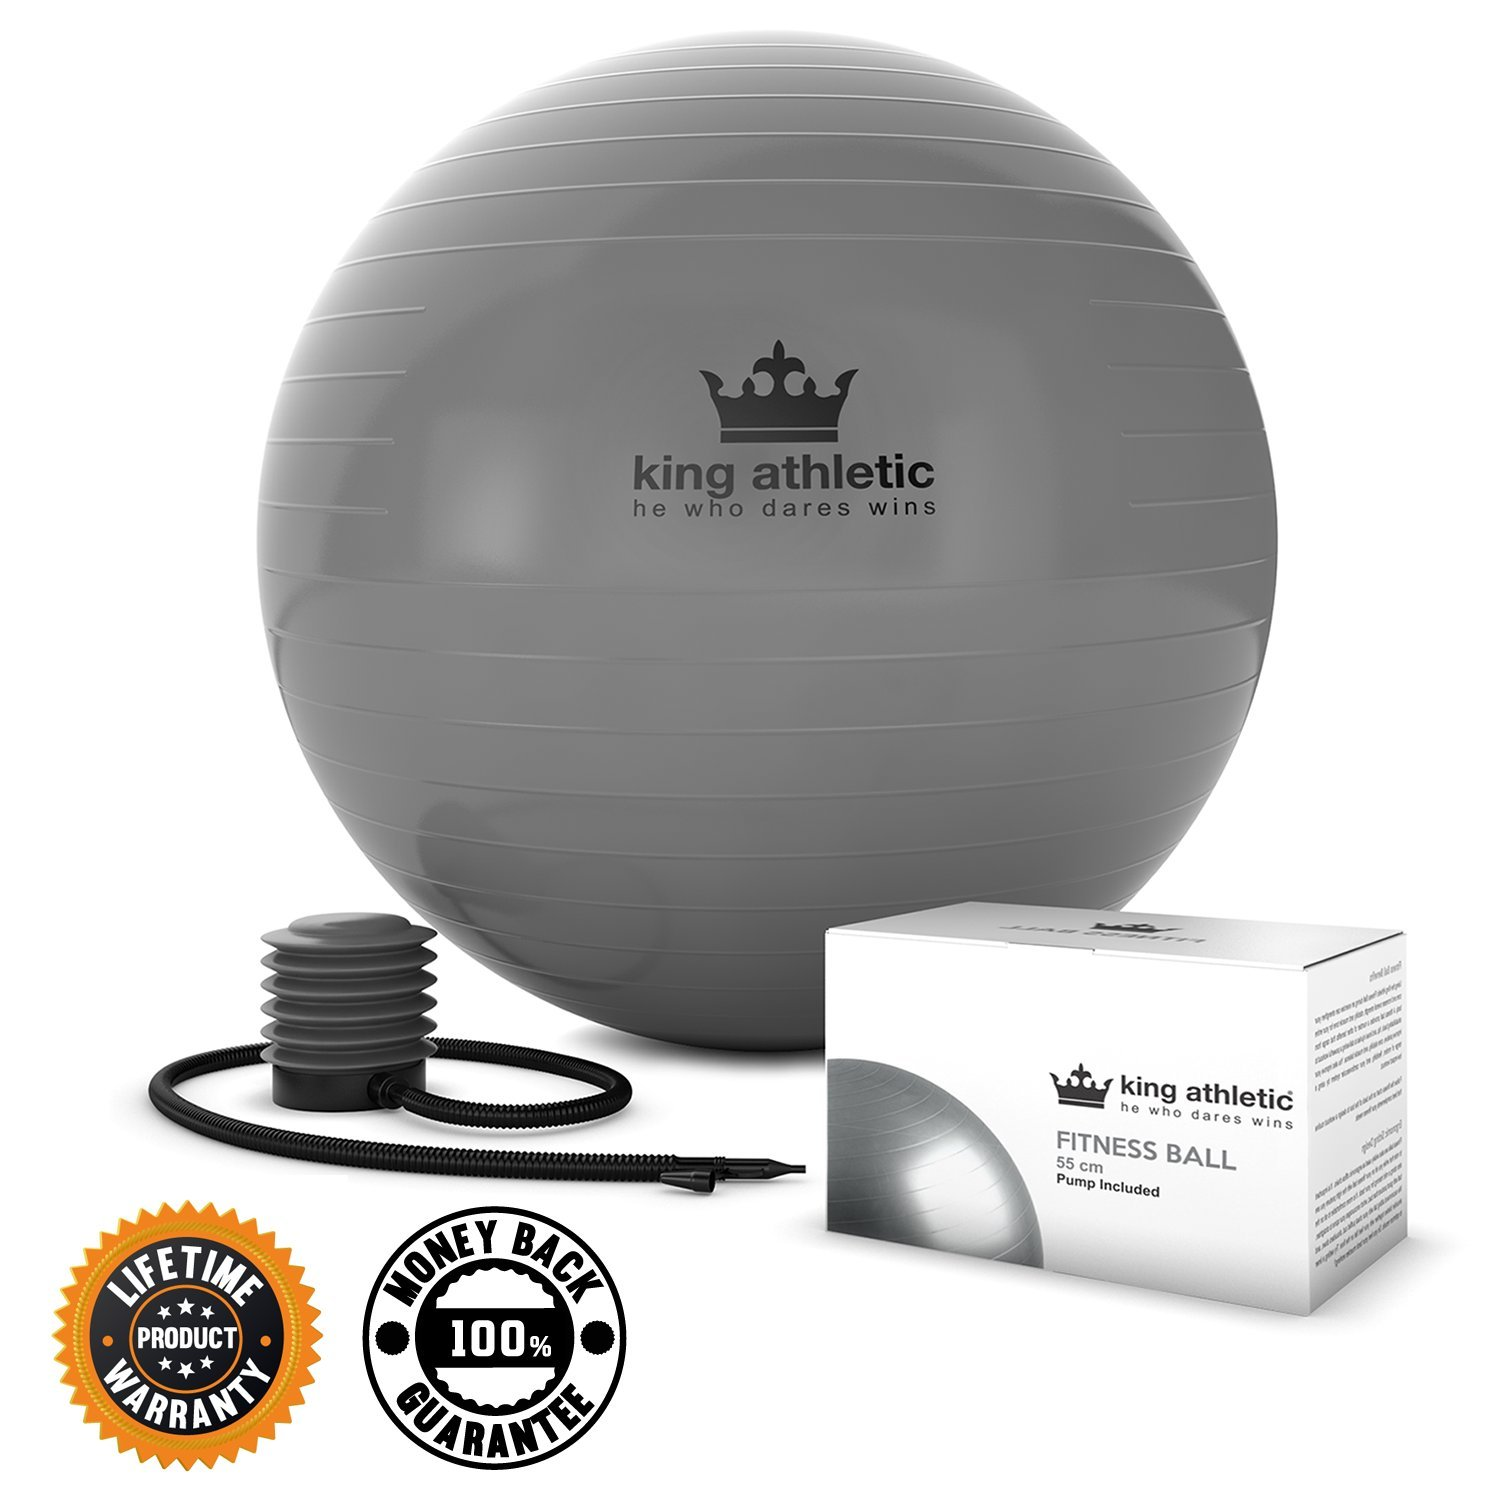 Yoga Gym Ball :: New Stability Balance Swiss Exercise Balls :: Because You Need the Best Quality Anti Burst Rubber :: Fitness Birthing Ball Chair Comes in 65 cm & 55cm Size :: Includes 2 FREE Instructional eBooks :: Instant Lifetime Product Warranty Ki